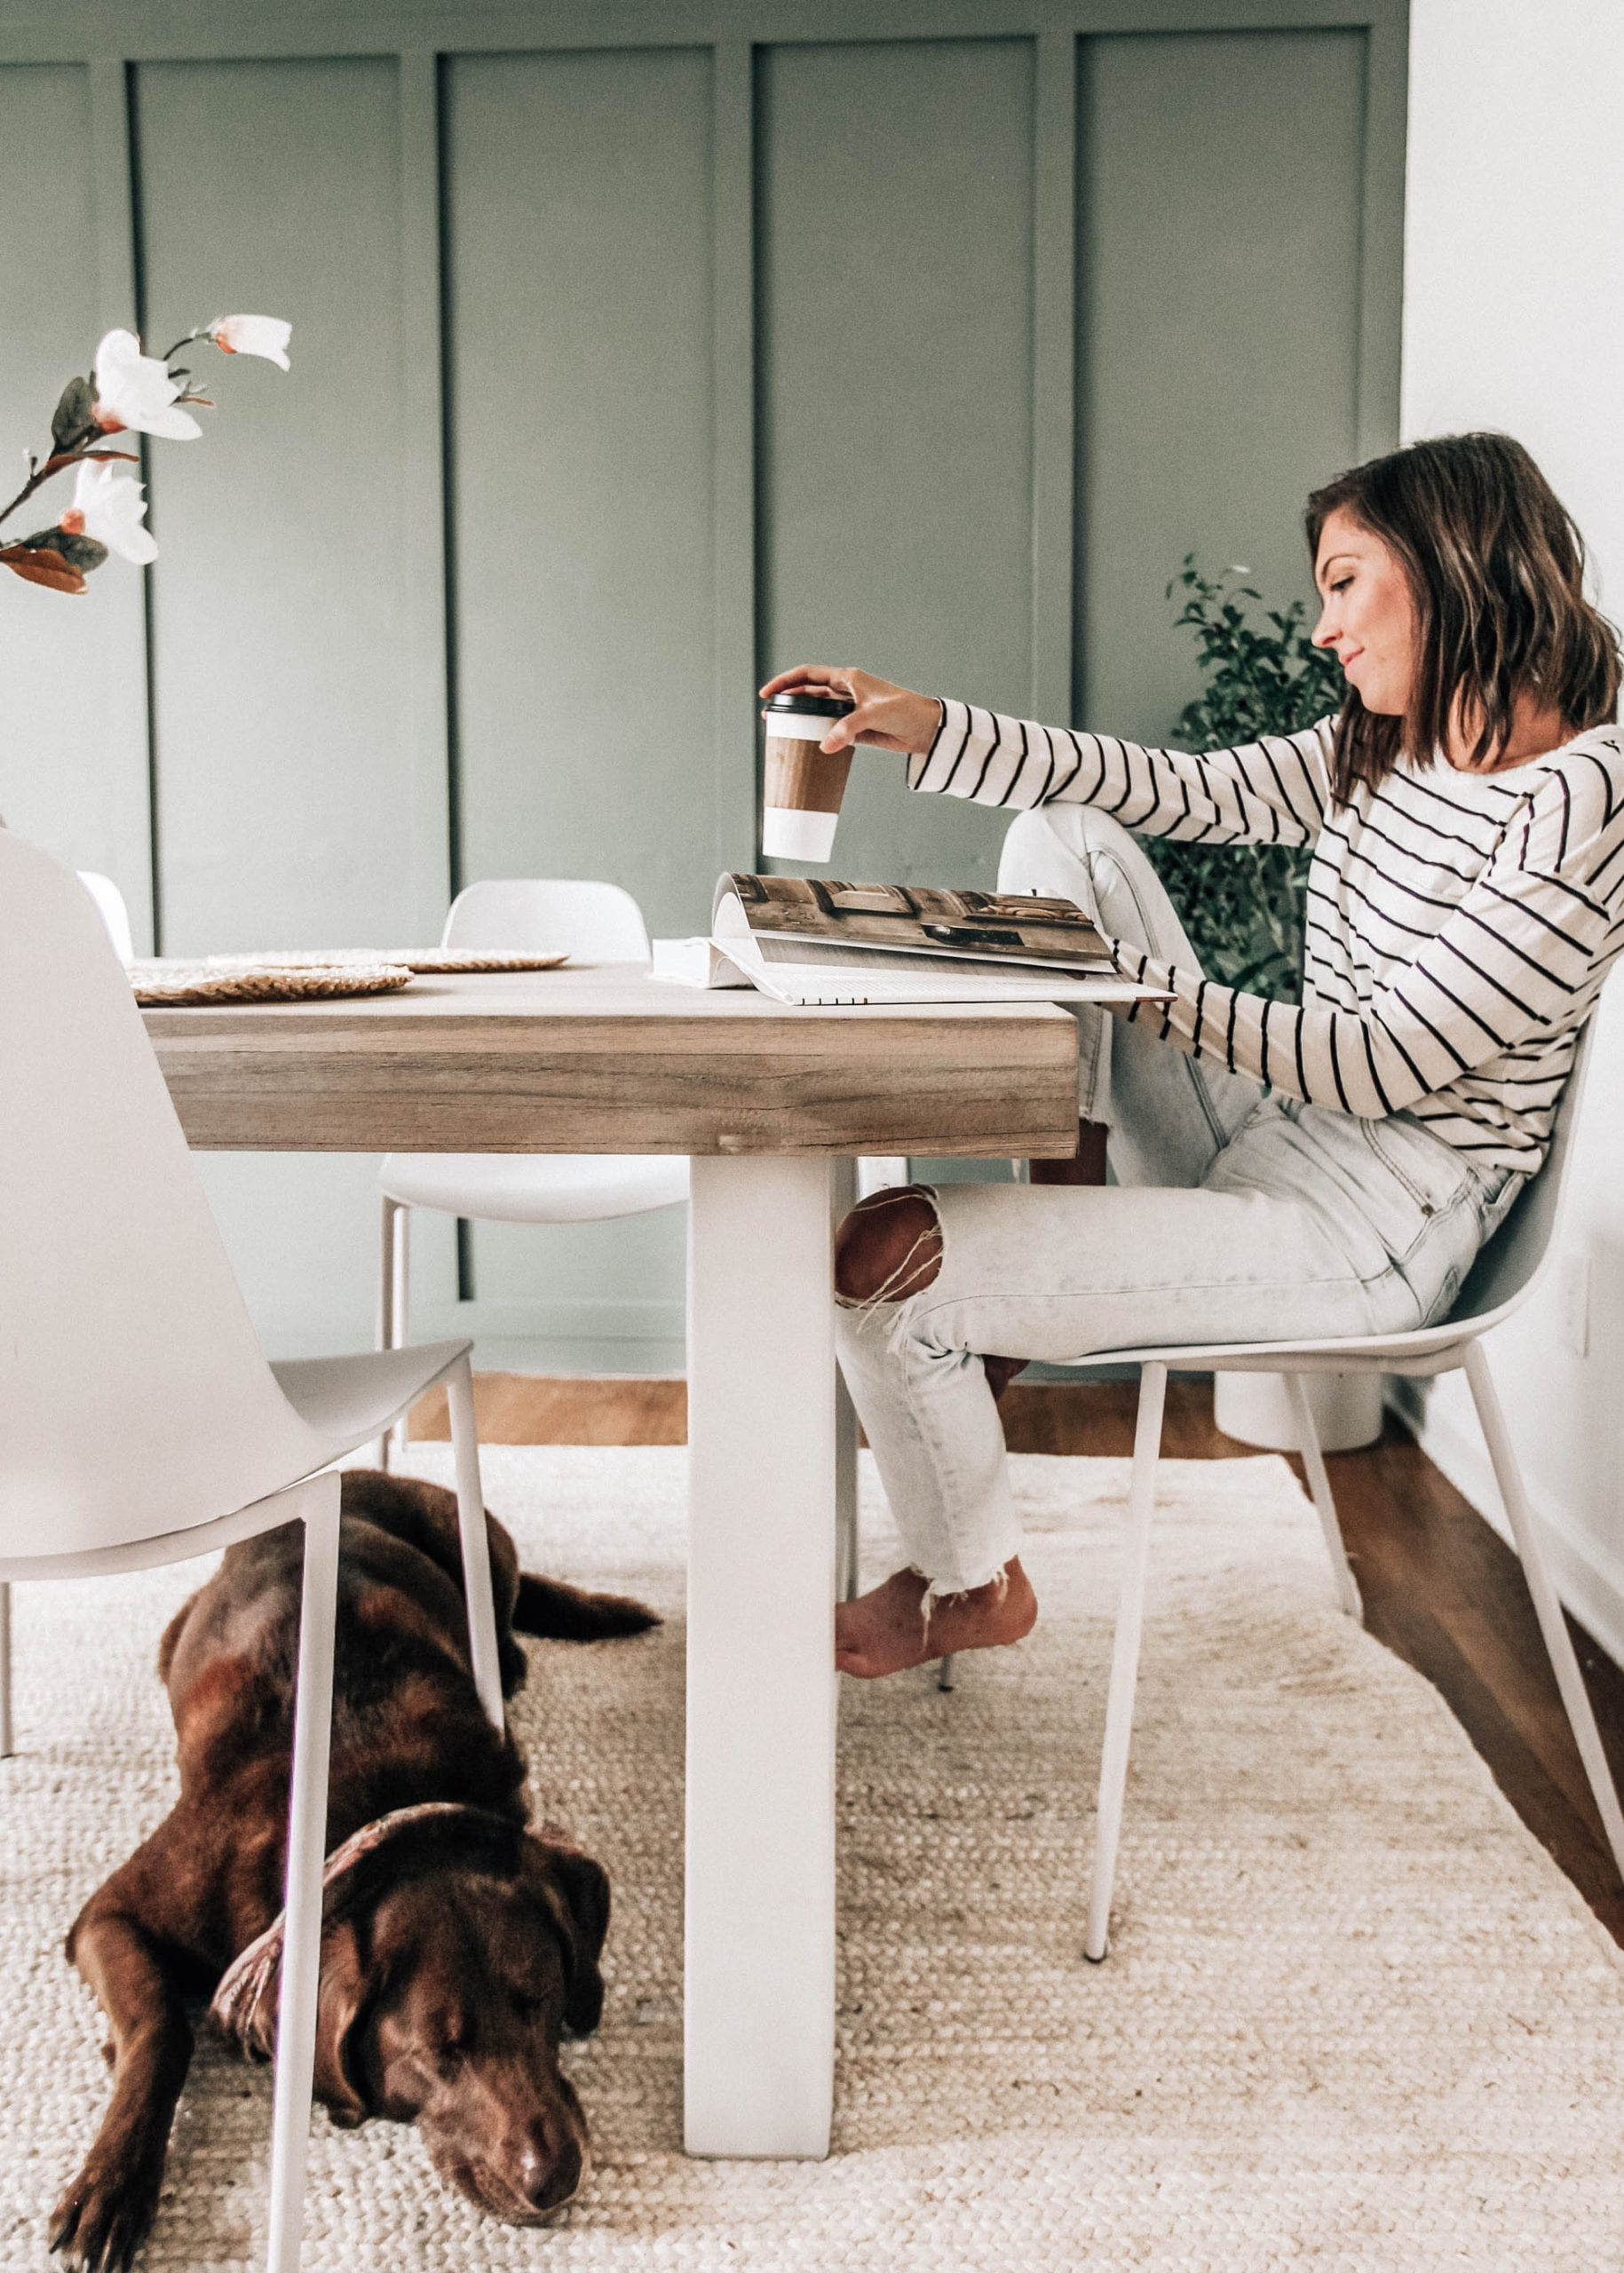 Searching for the Perfect Dining Table – Article Tavola Table Review